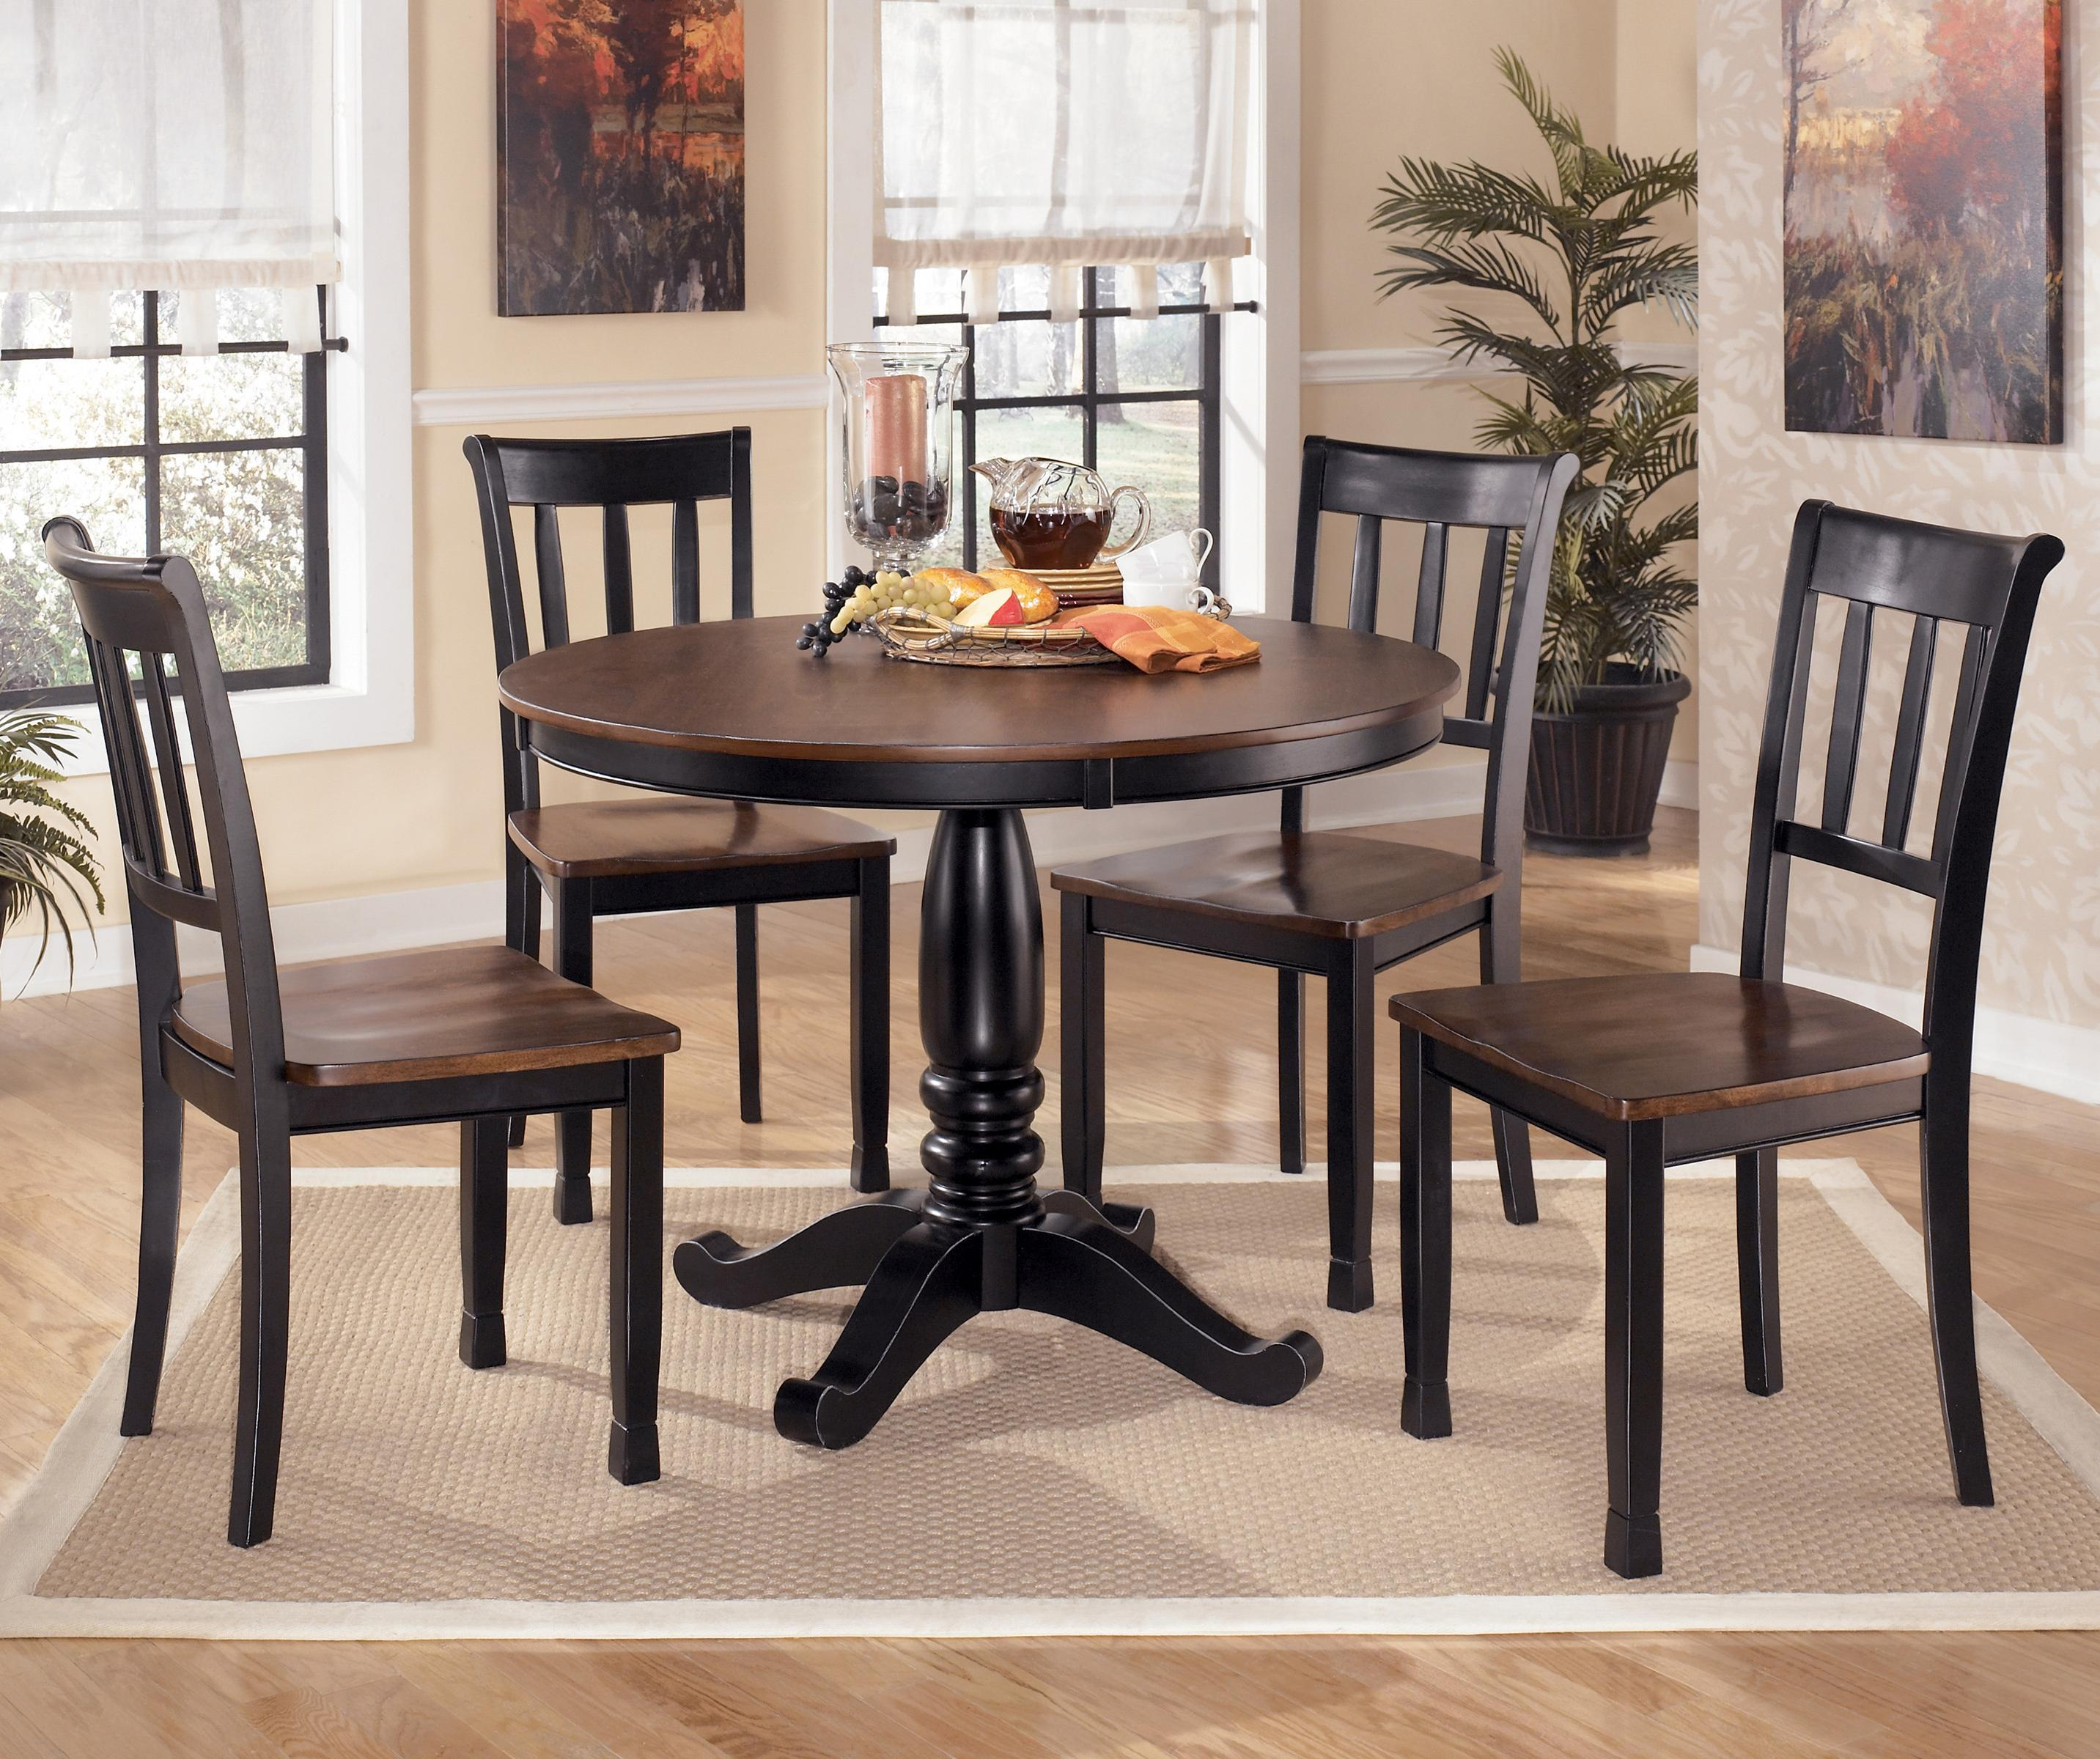 kitchen table and chairs Signature Design by Ashley Owingsville 5 Piece Round Dining Table Set